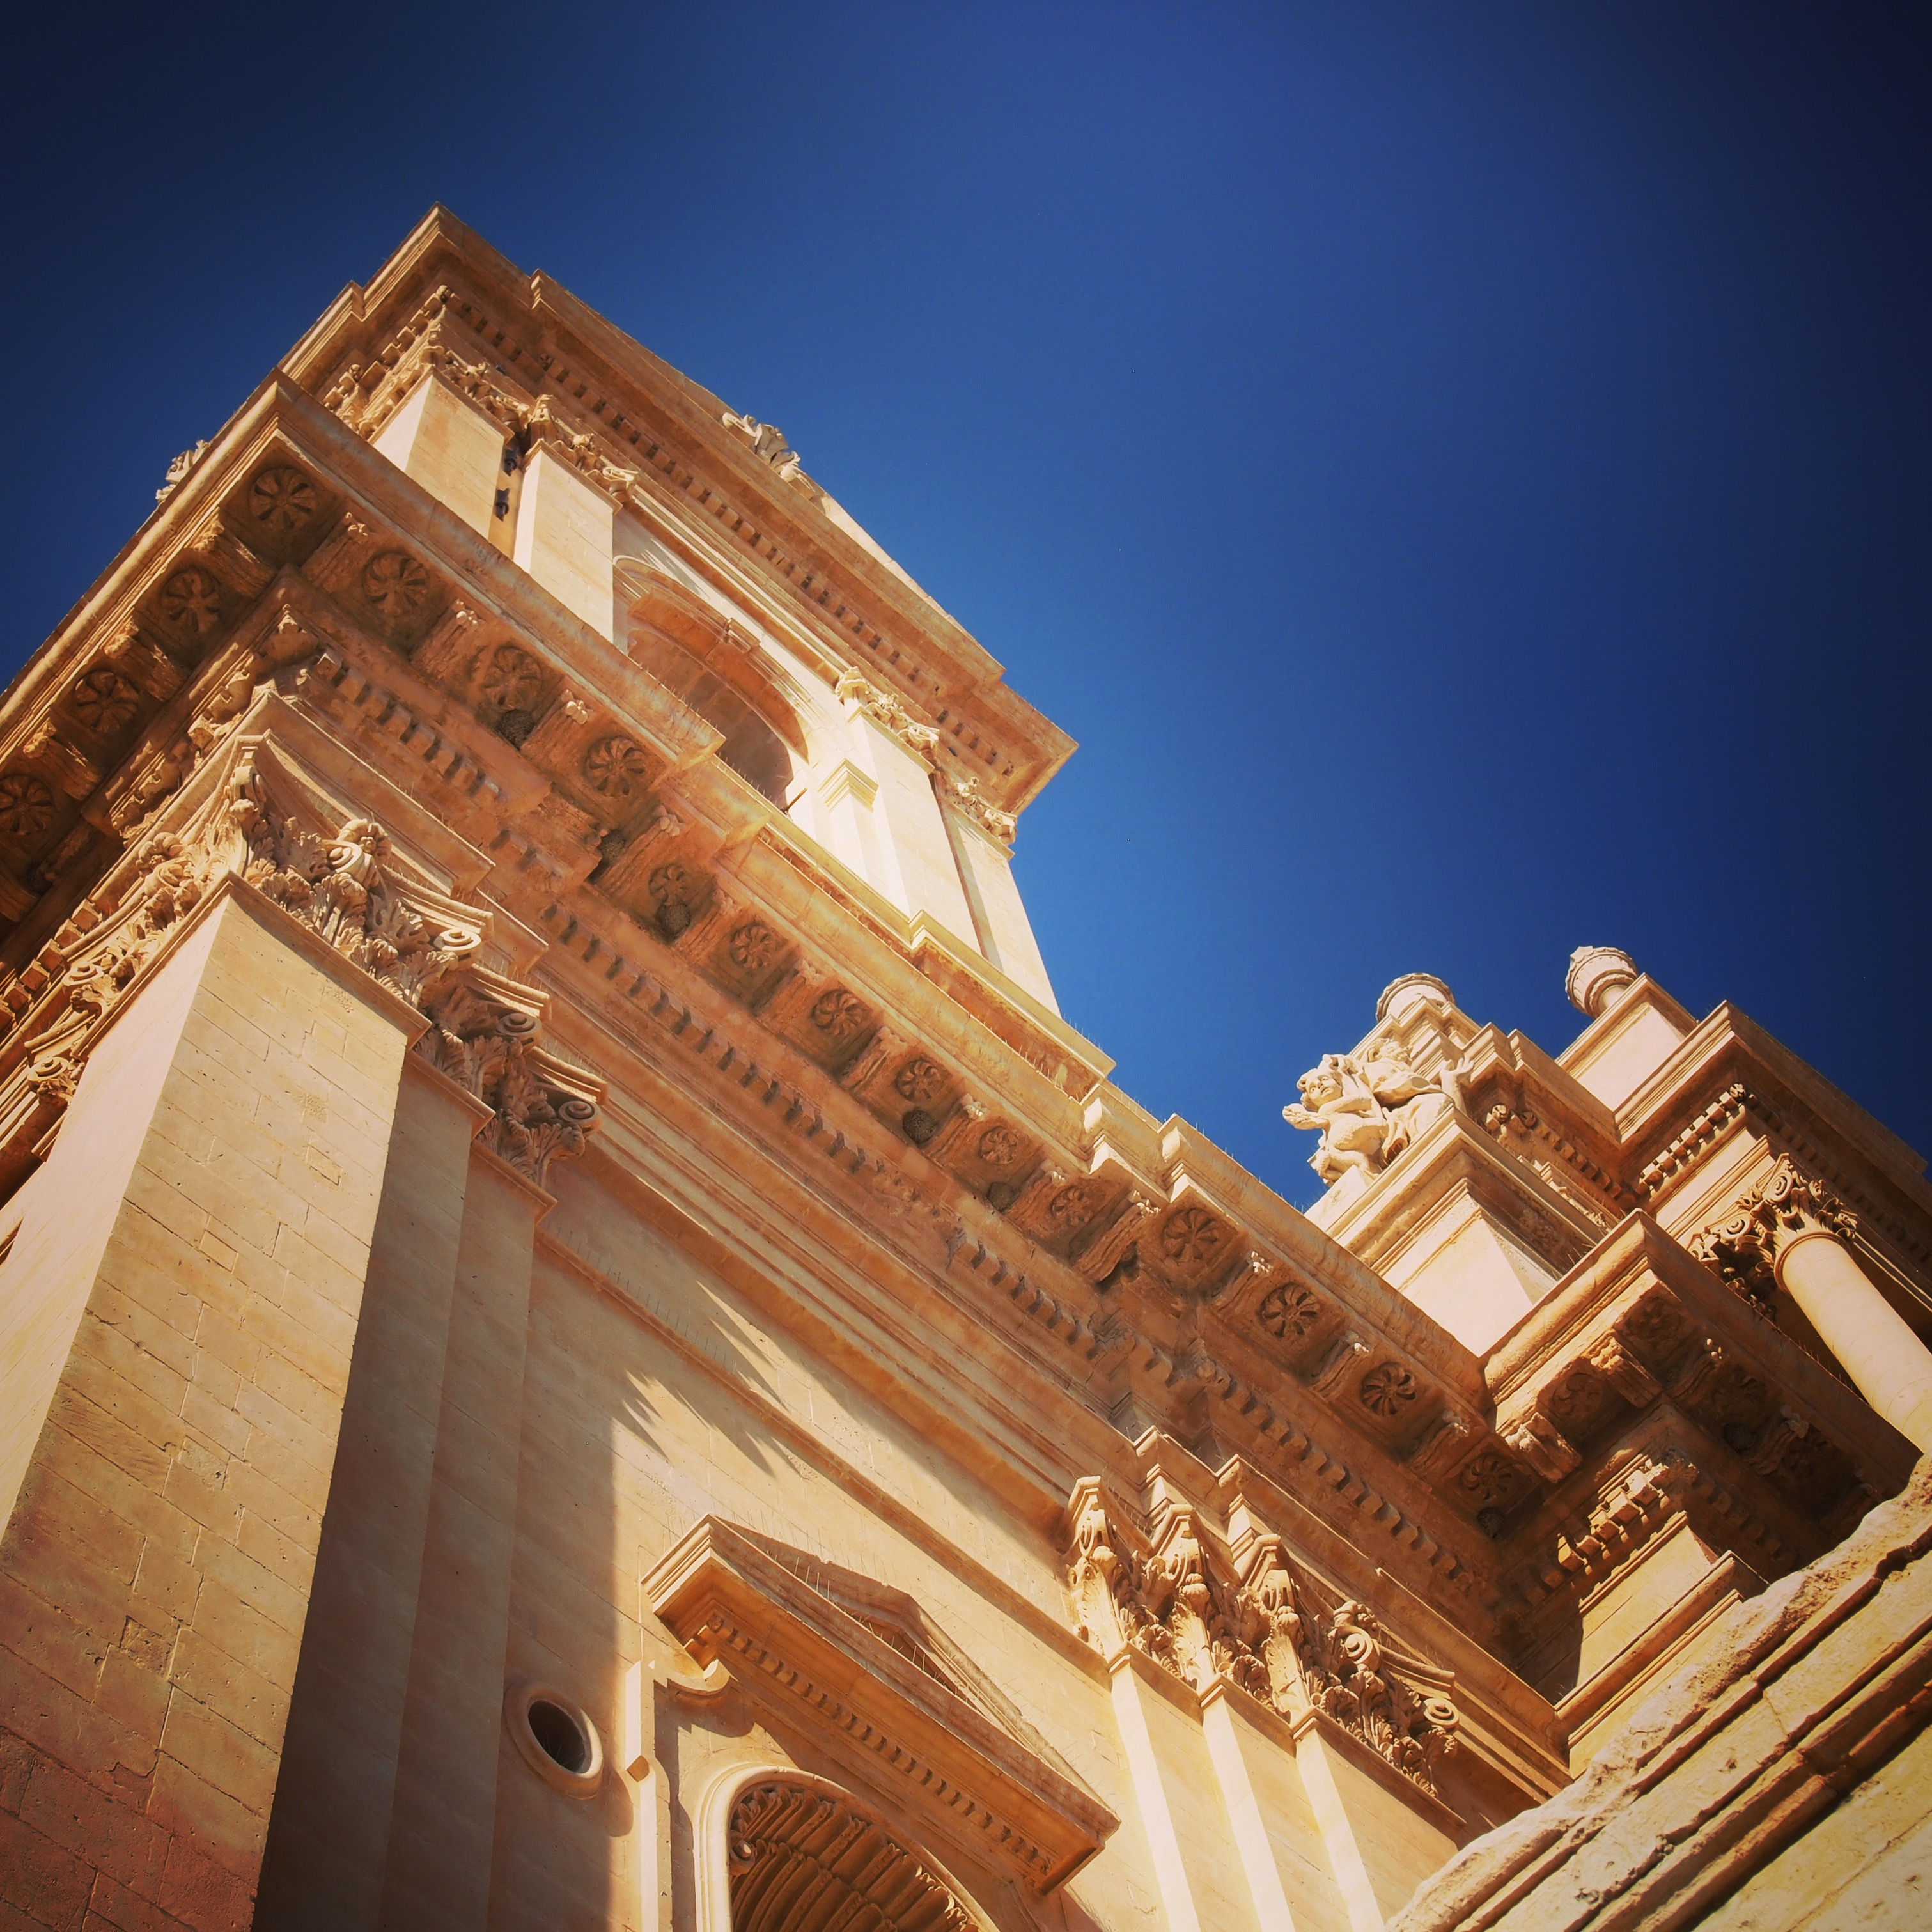 A Tower in Noto, Sicily, Italy via Instagram [Photo]